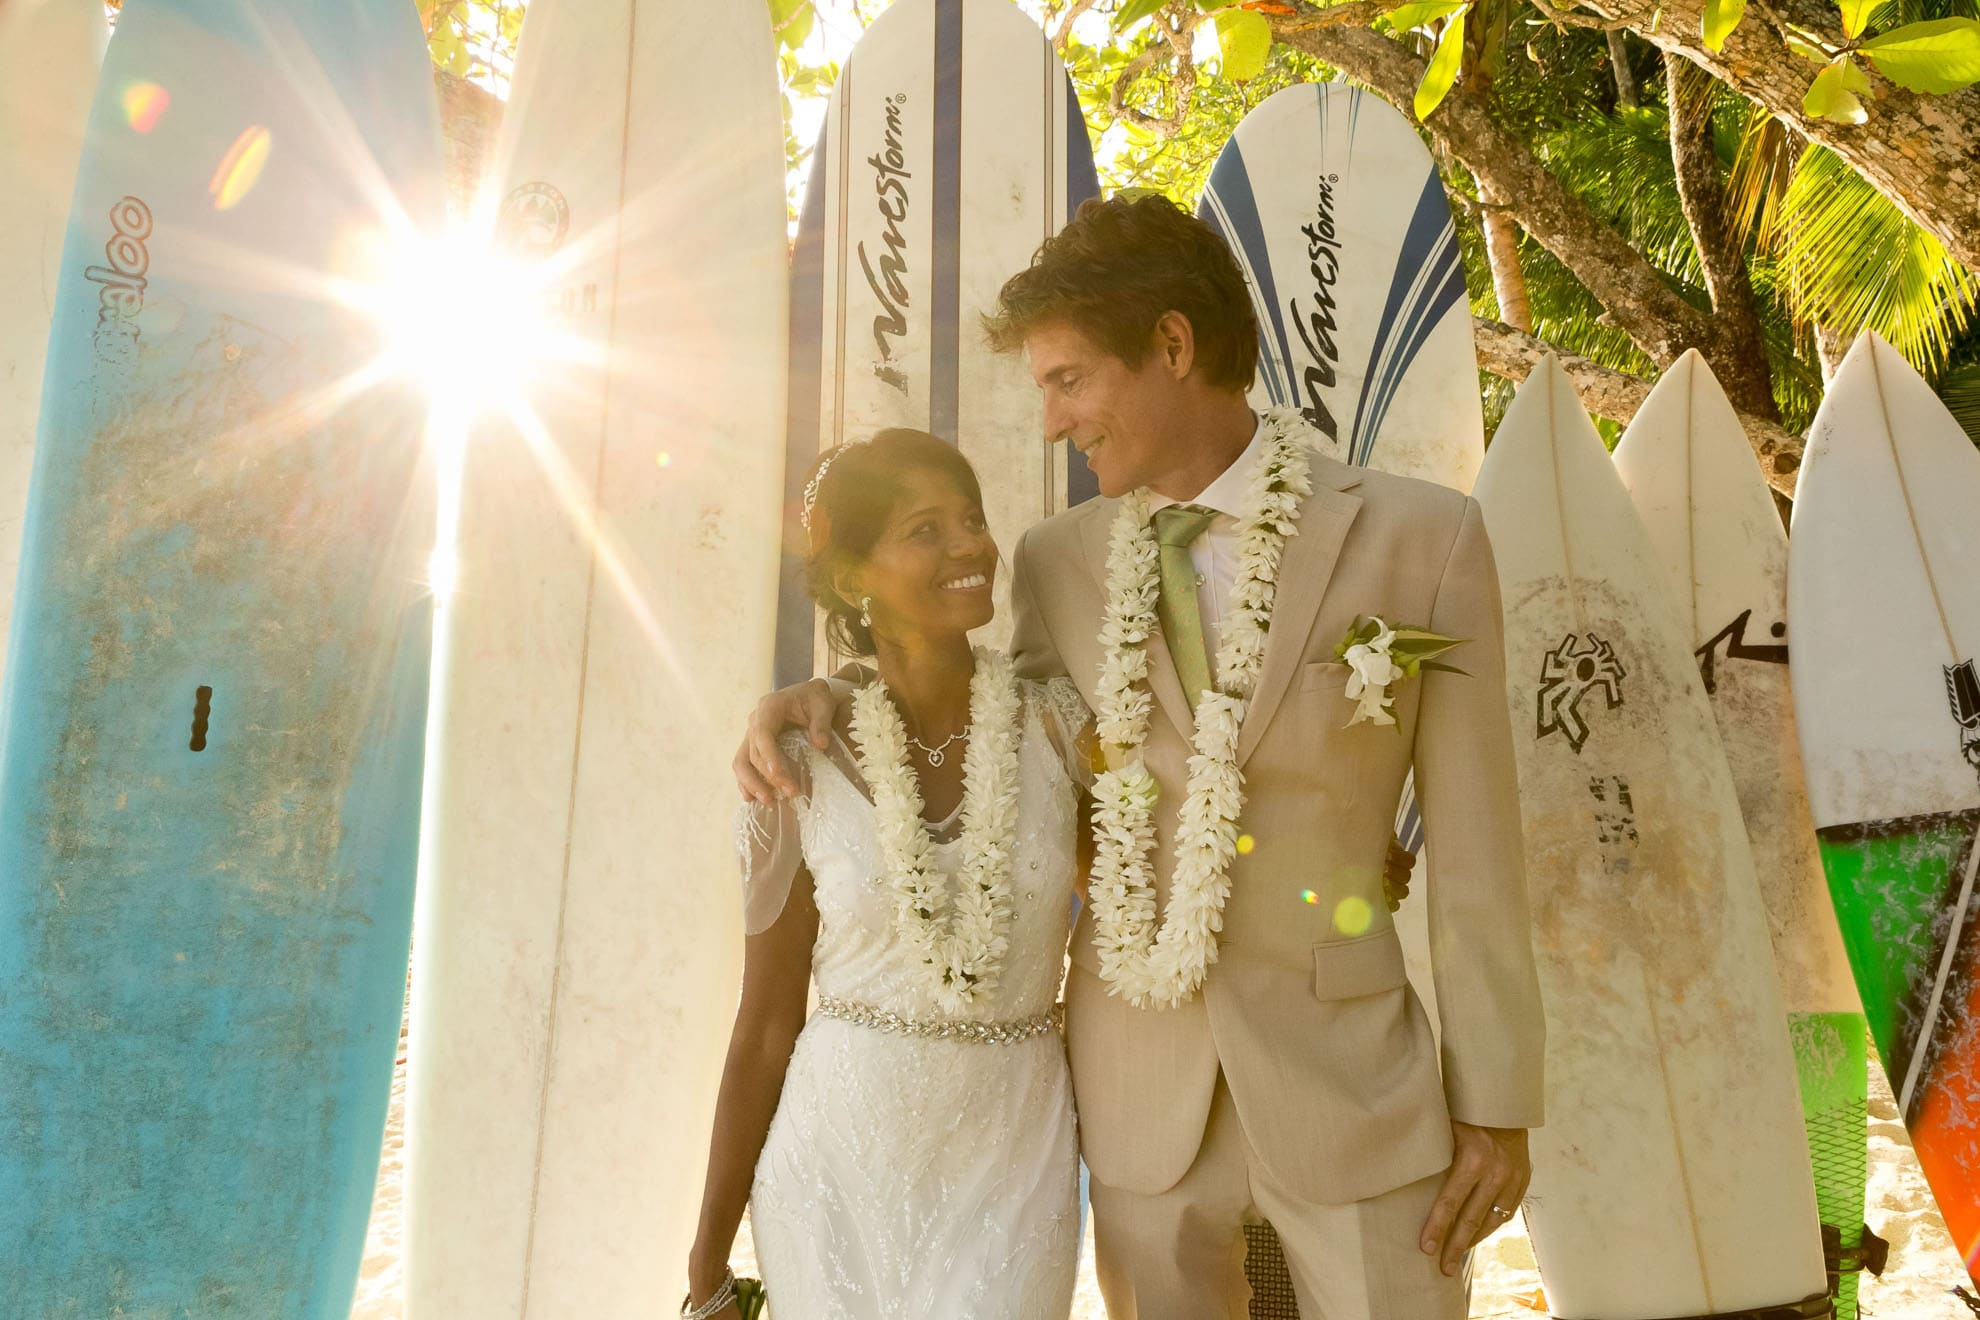 Bride and groom with surfboards.